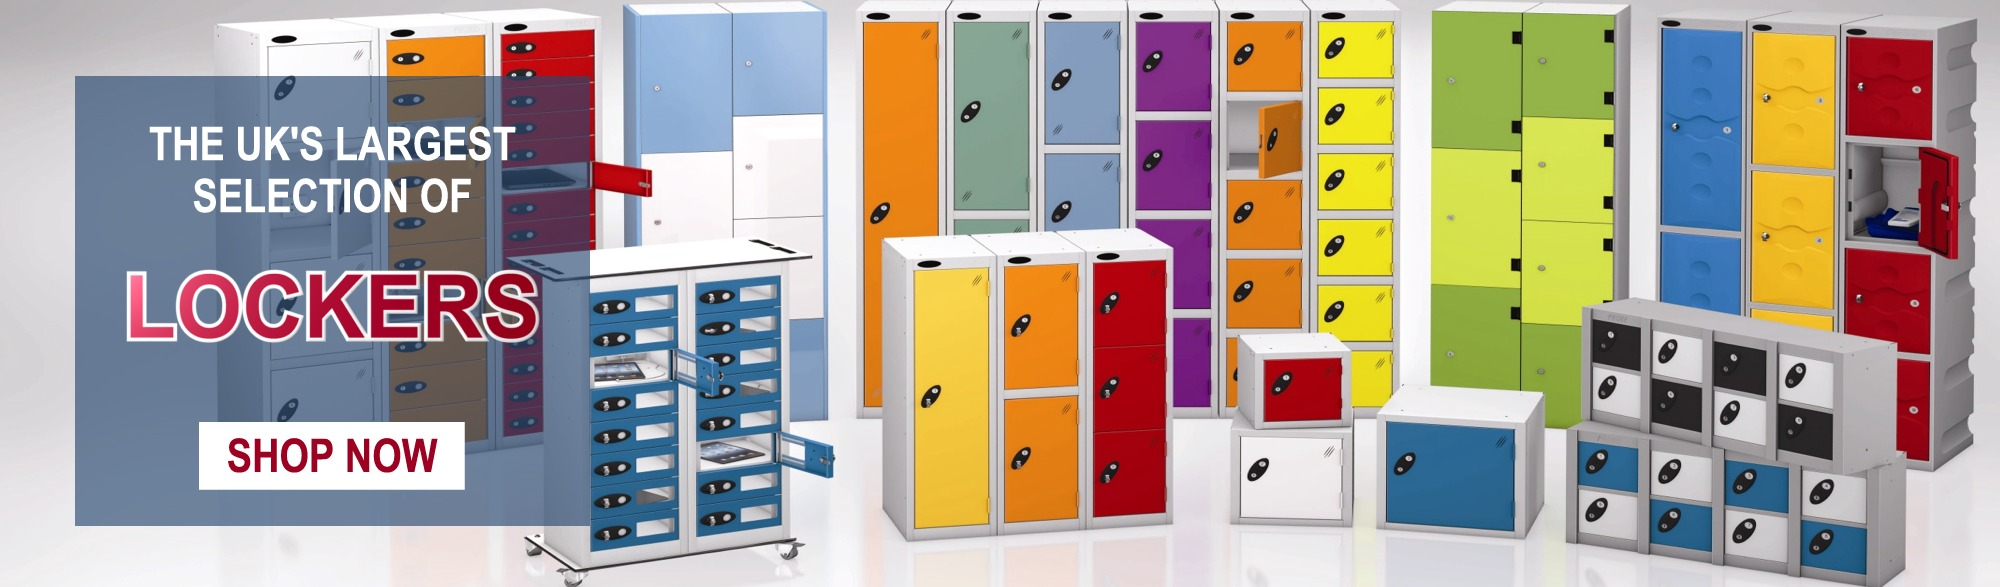 The UK's largest selection of lockers and storage equipment